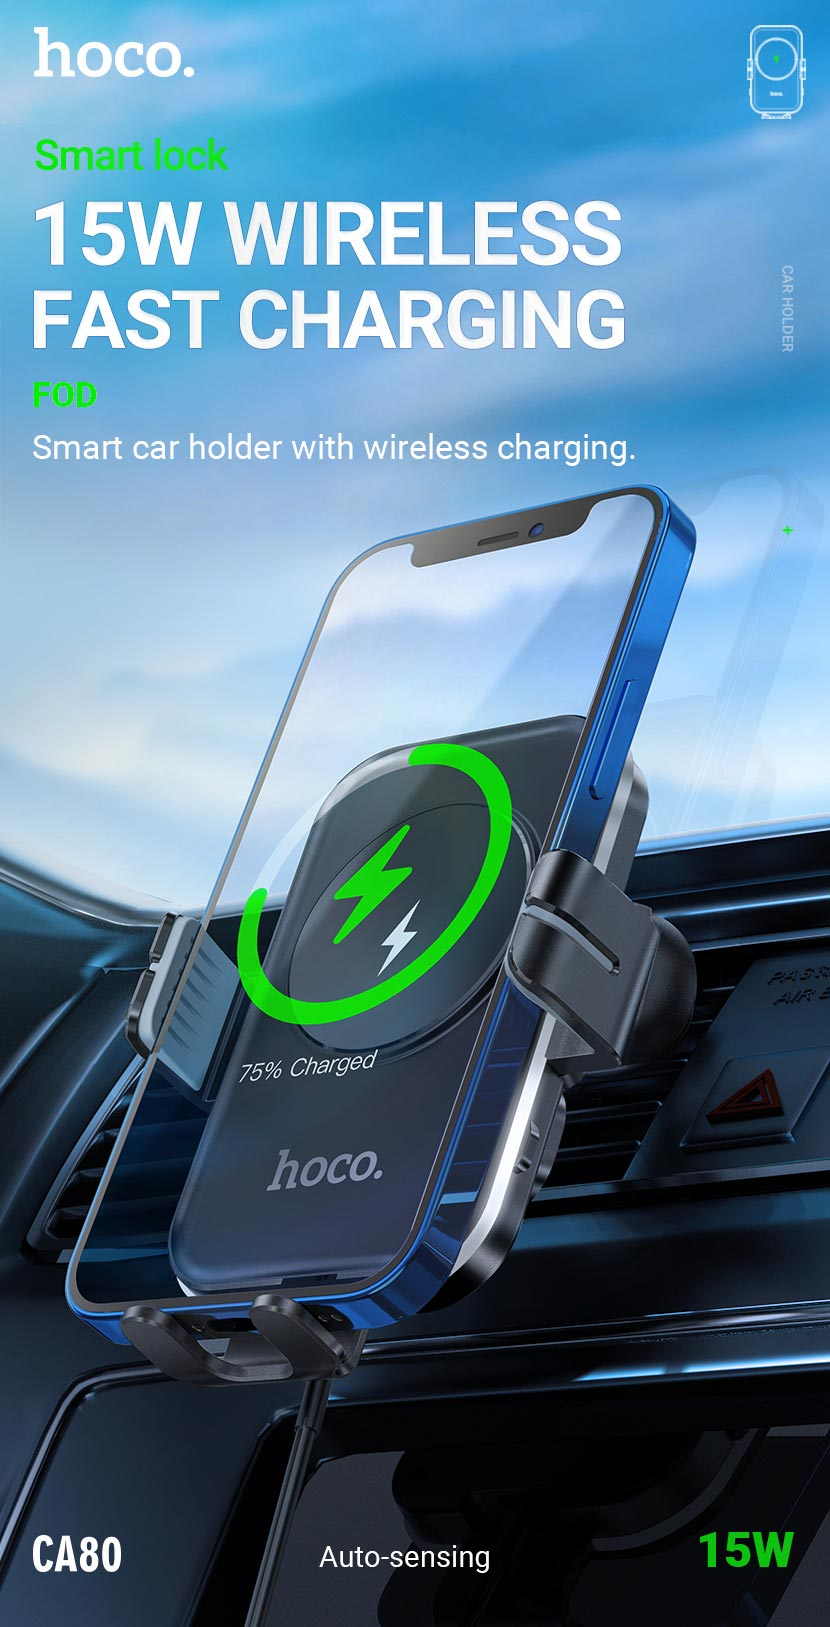 hoco news ca80 buddy smart wireless charging car holder en